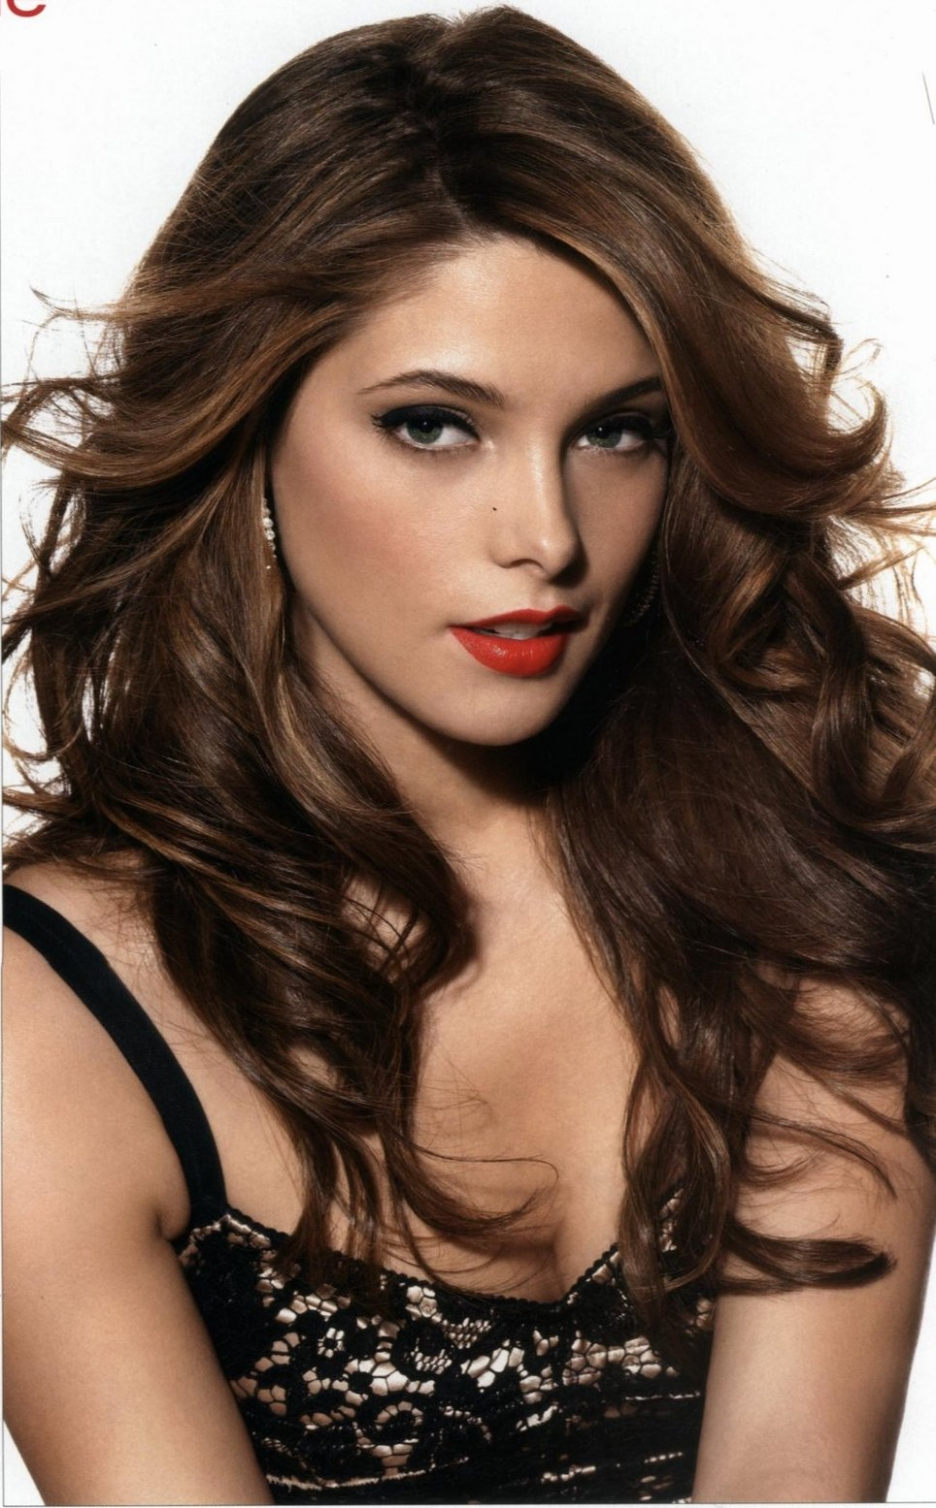 Hollywood All Stars Ashley Greene Profile Upcoming Films